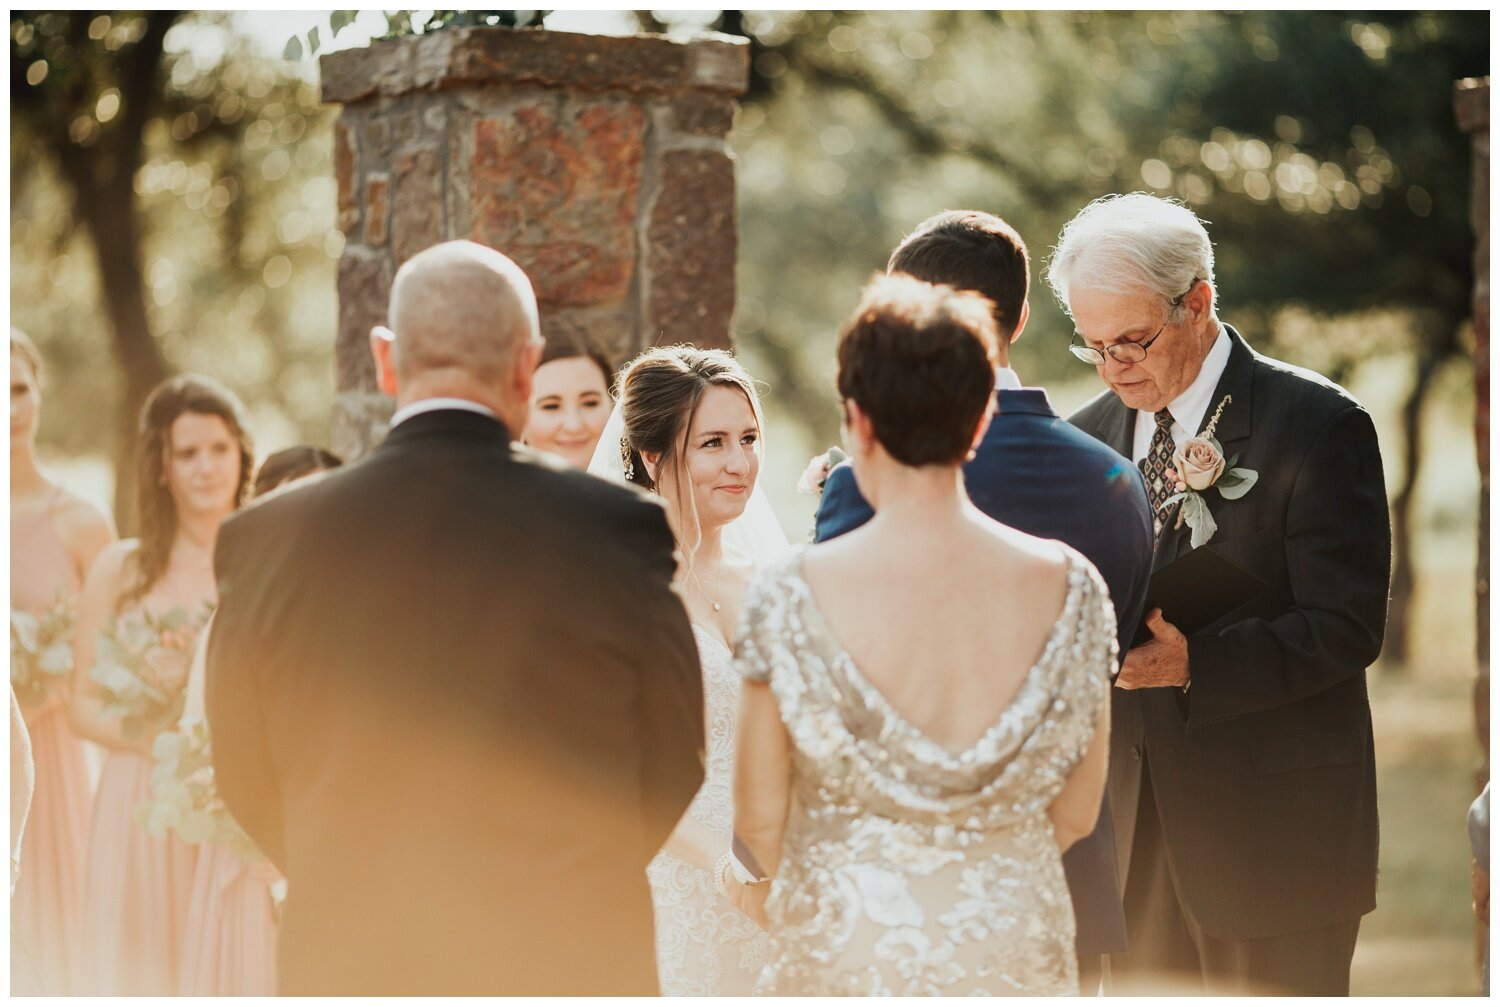 Modern Wedding at Ma Maison in Dripping Springs, Austin, Texas (Joshua and Parisa – Austin Wedding Photographer)_0039.jpg